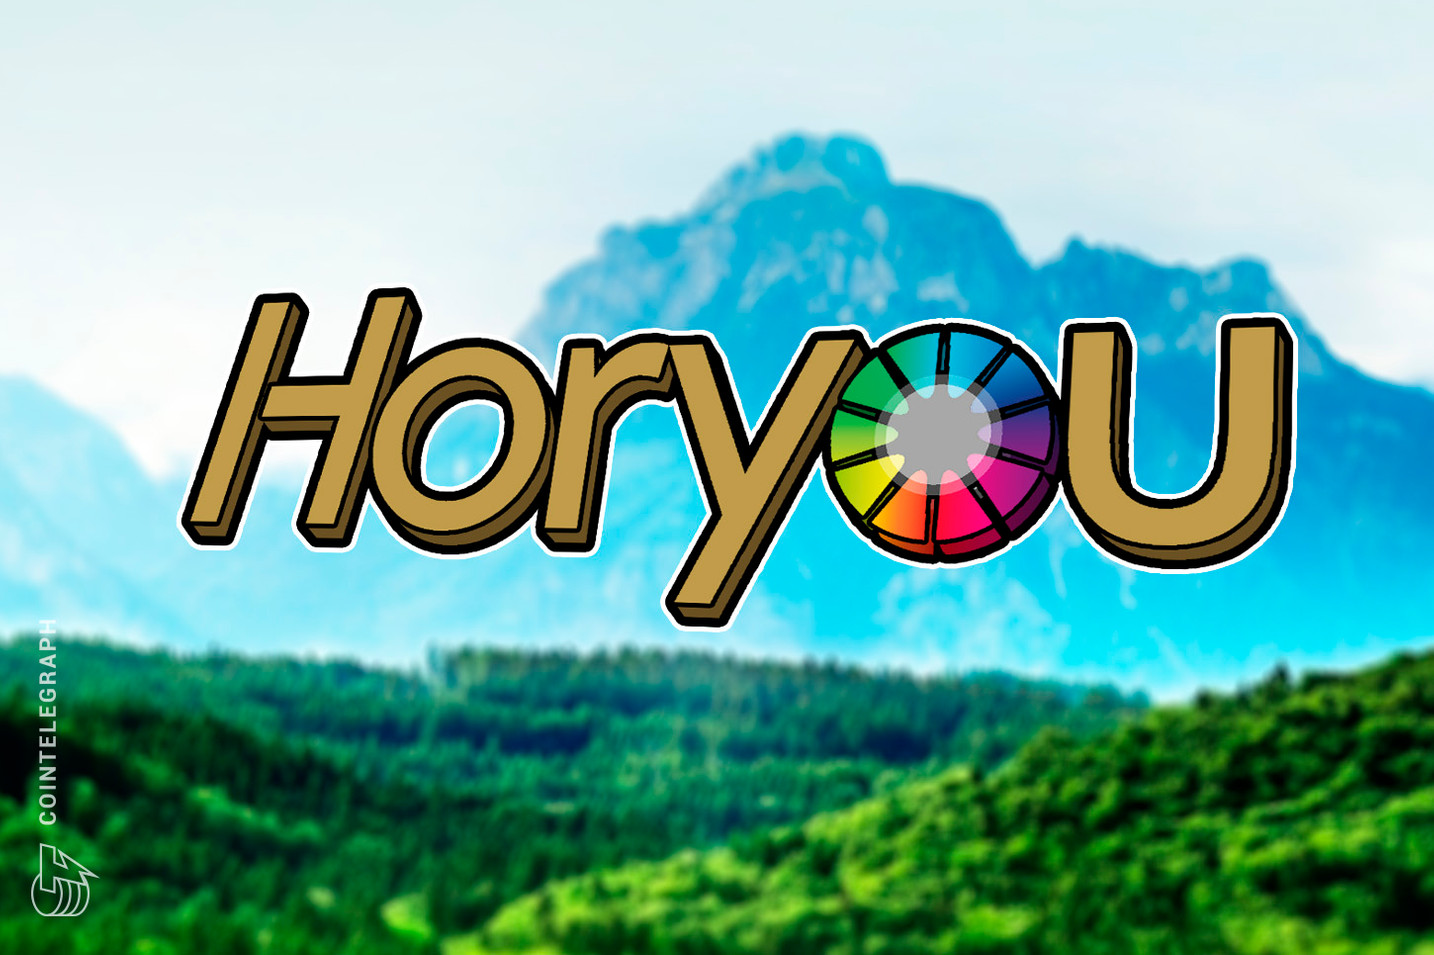 """Horyou """"Blockchain With a Purpose"""": a Token for Inclusion and Sustainability"""